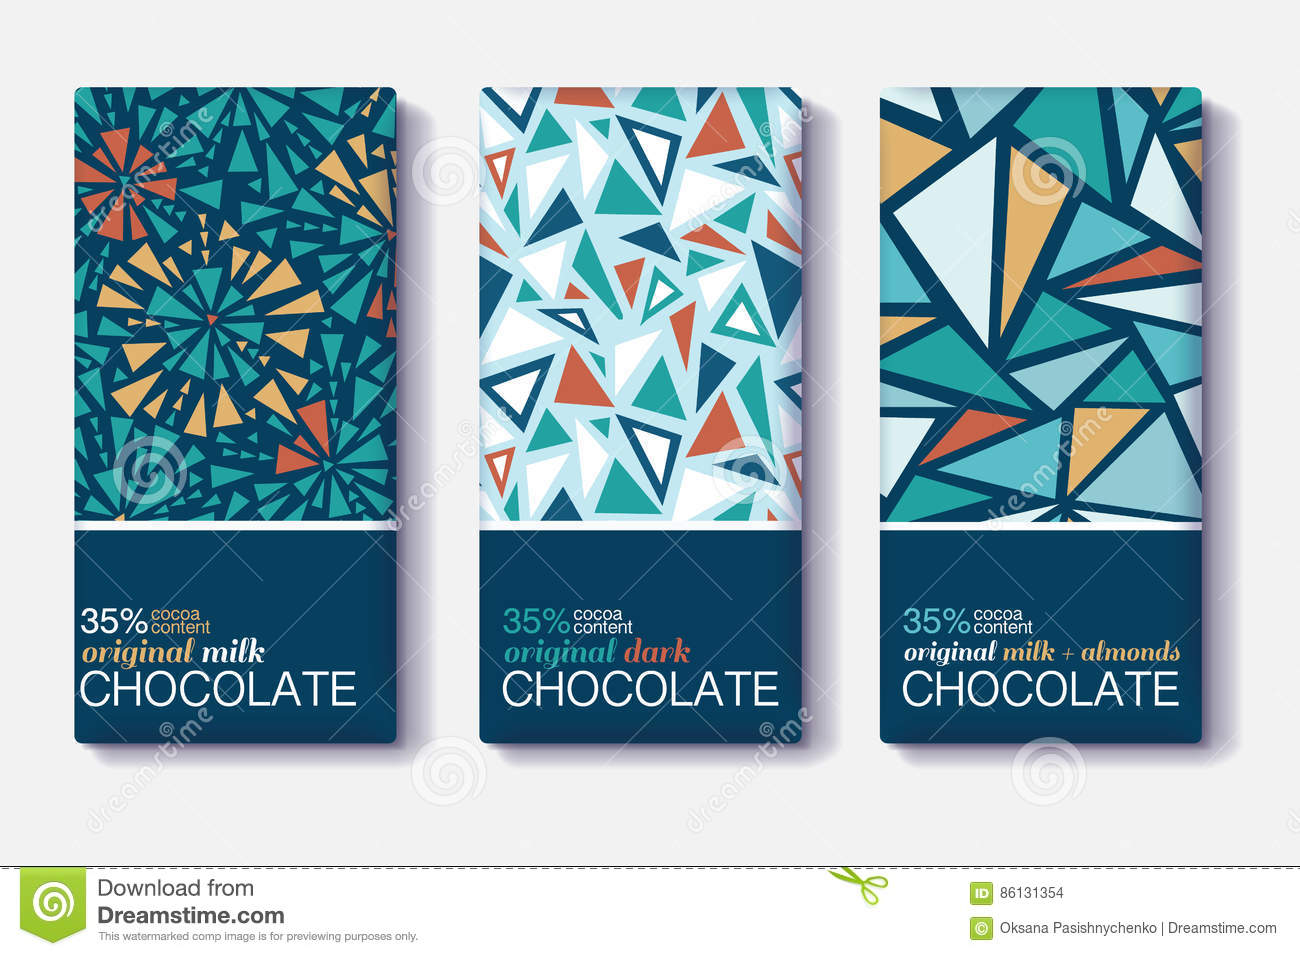 chocolate package design combined with price Illustrative chocolate wrappers showcase the biodiversity of peru — the dieline packaging & branding design & innovation news when candela dreams of eva chocolate package design on behance   fivestar branding - design and branding agency & inspiration gallery.